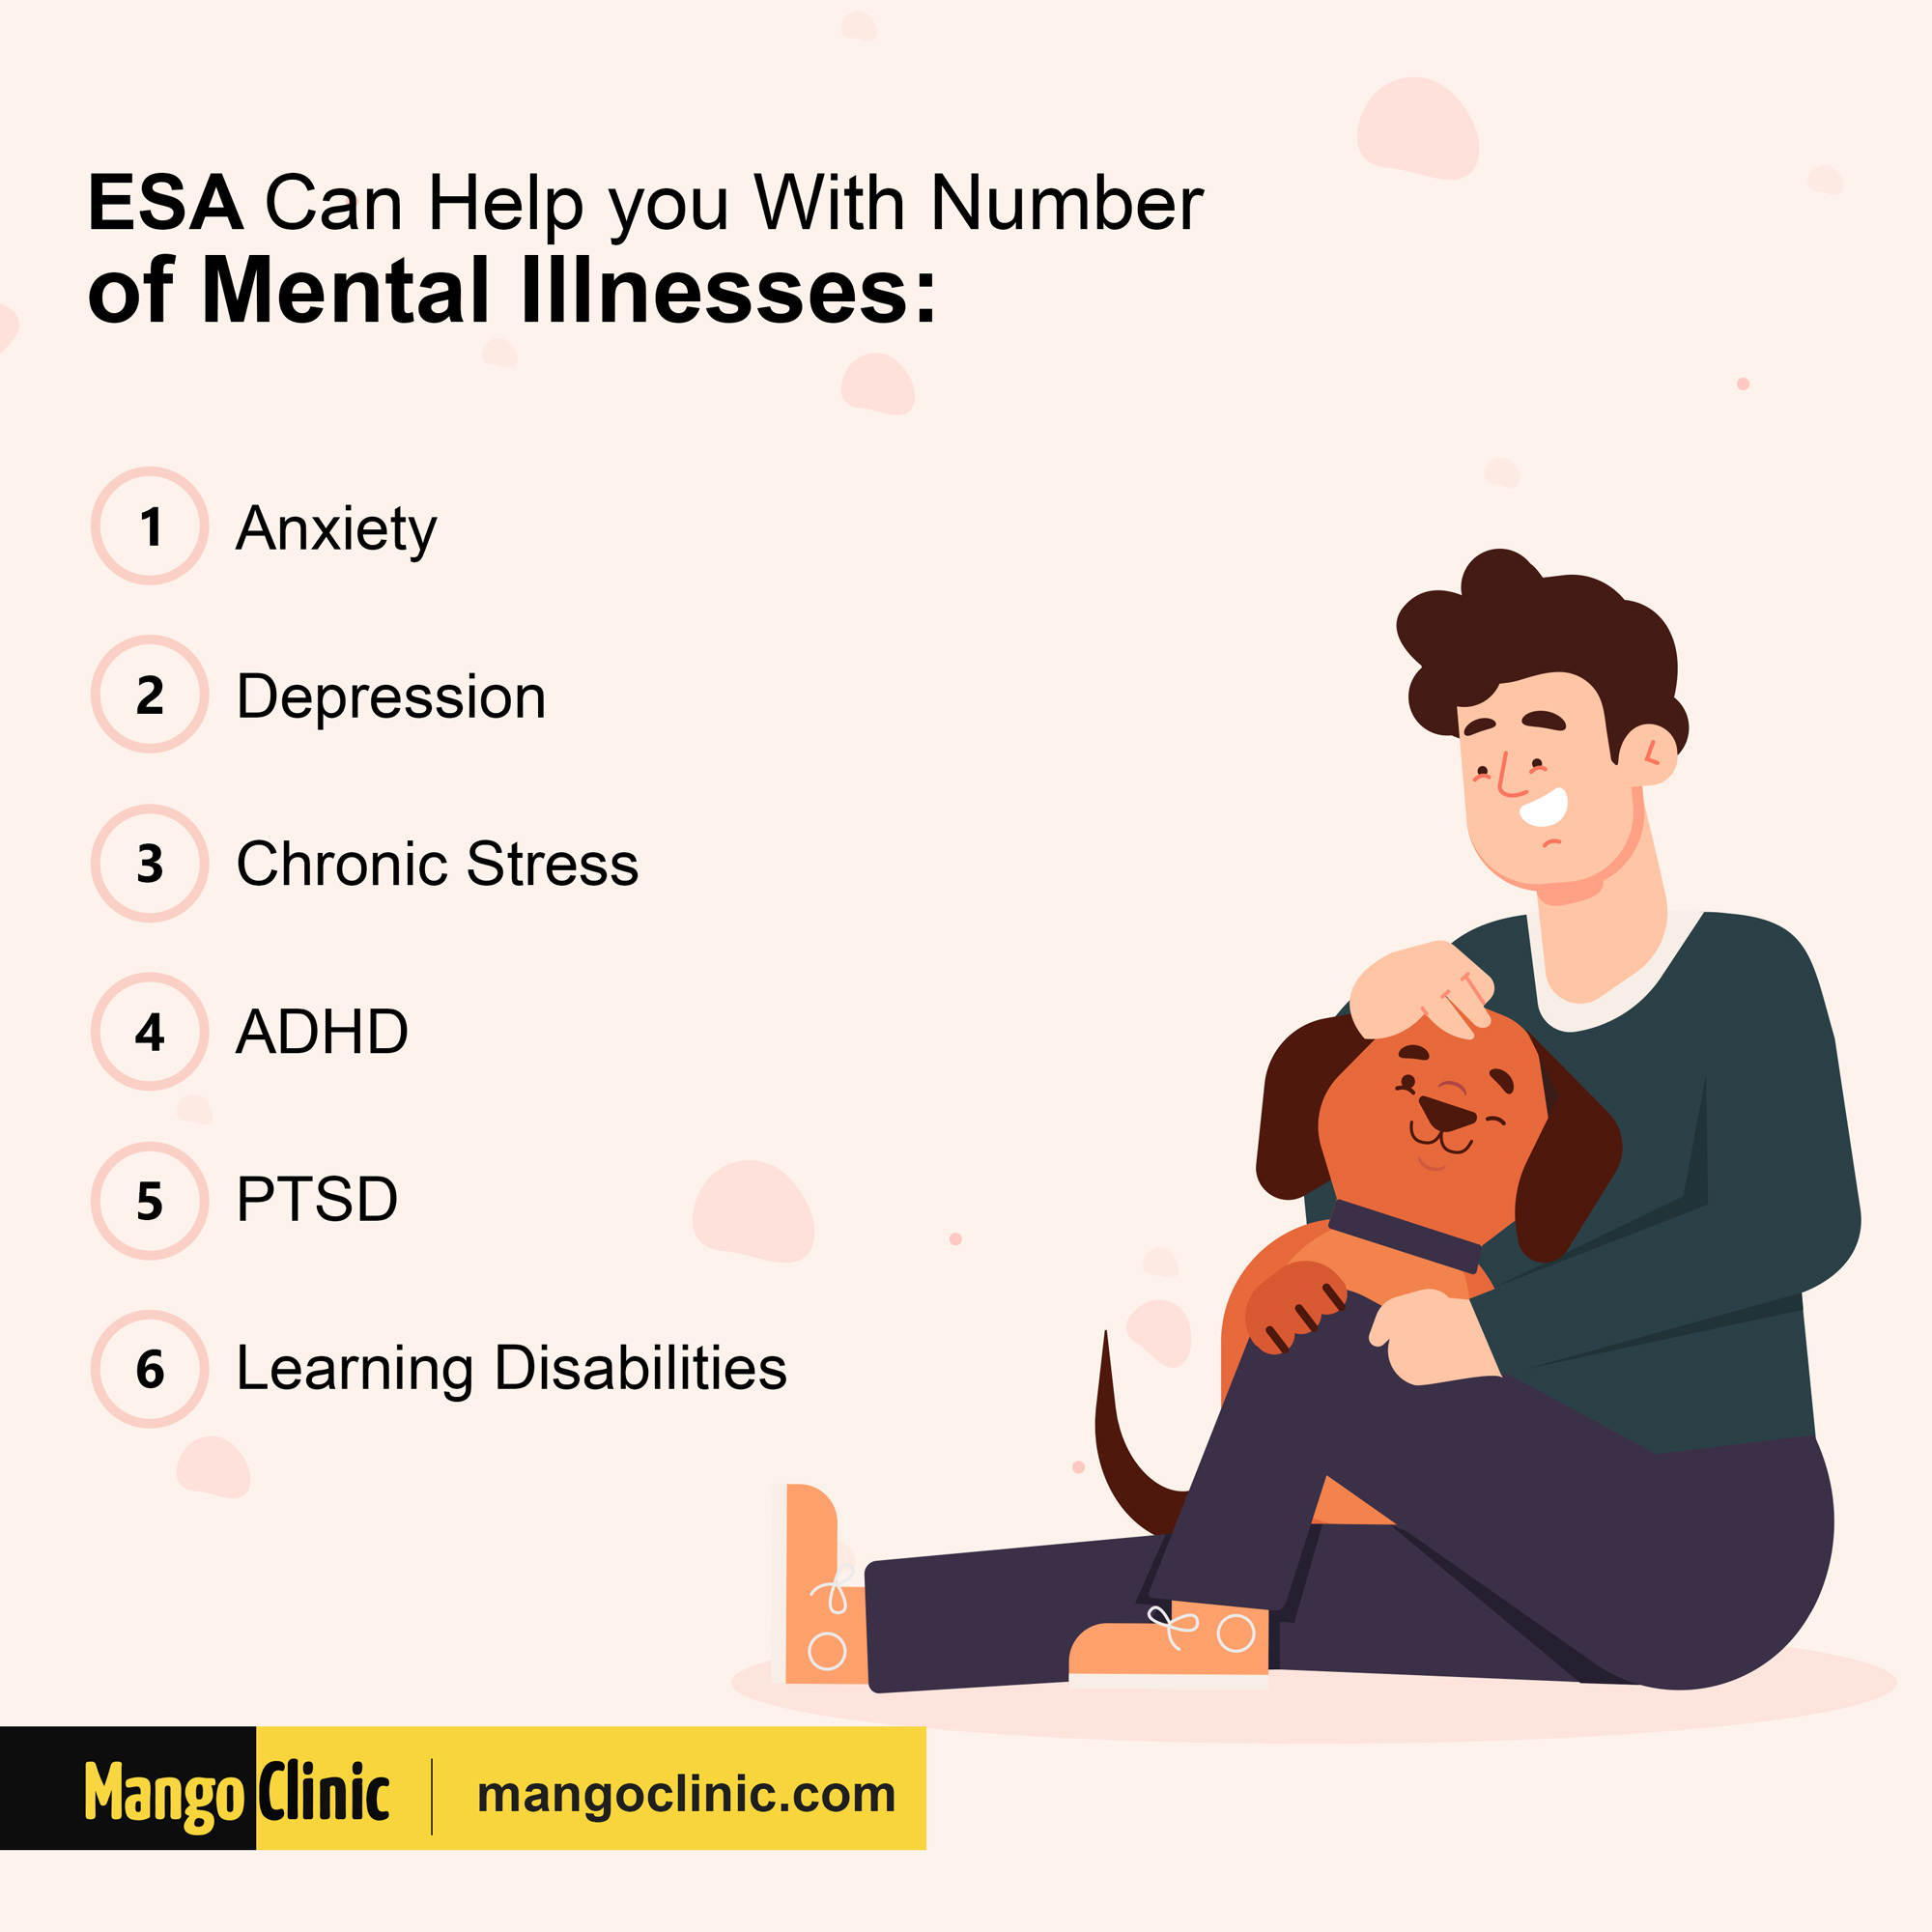 Can ESA helps with mental conditions